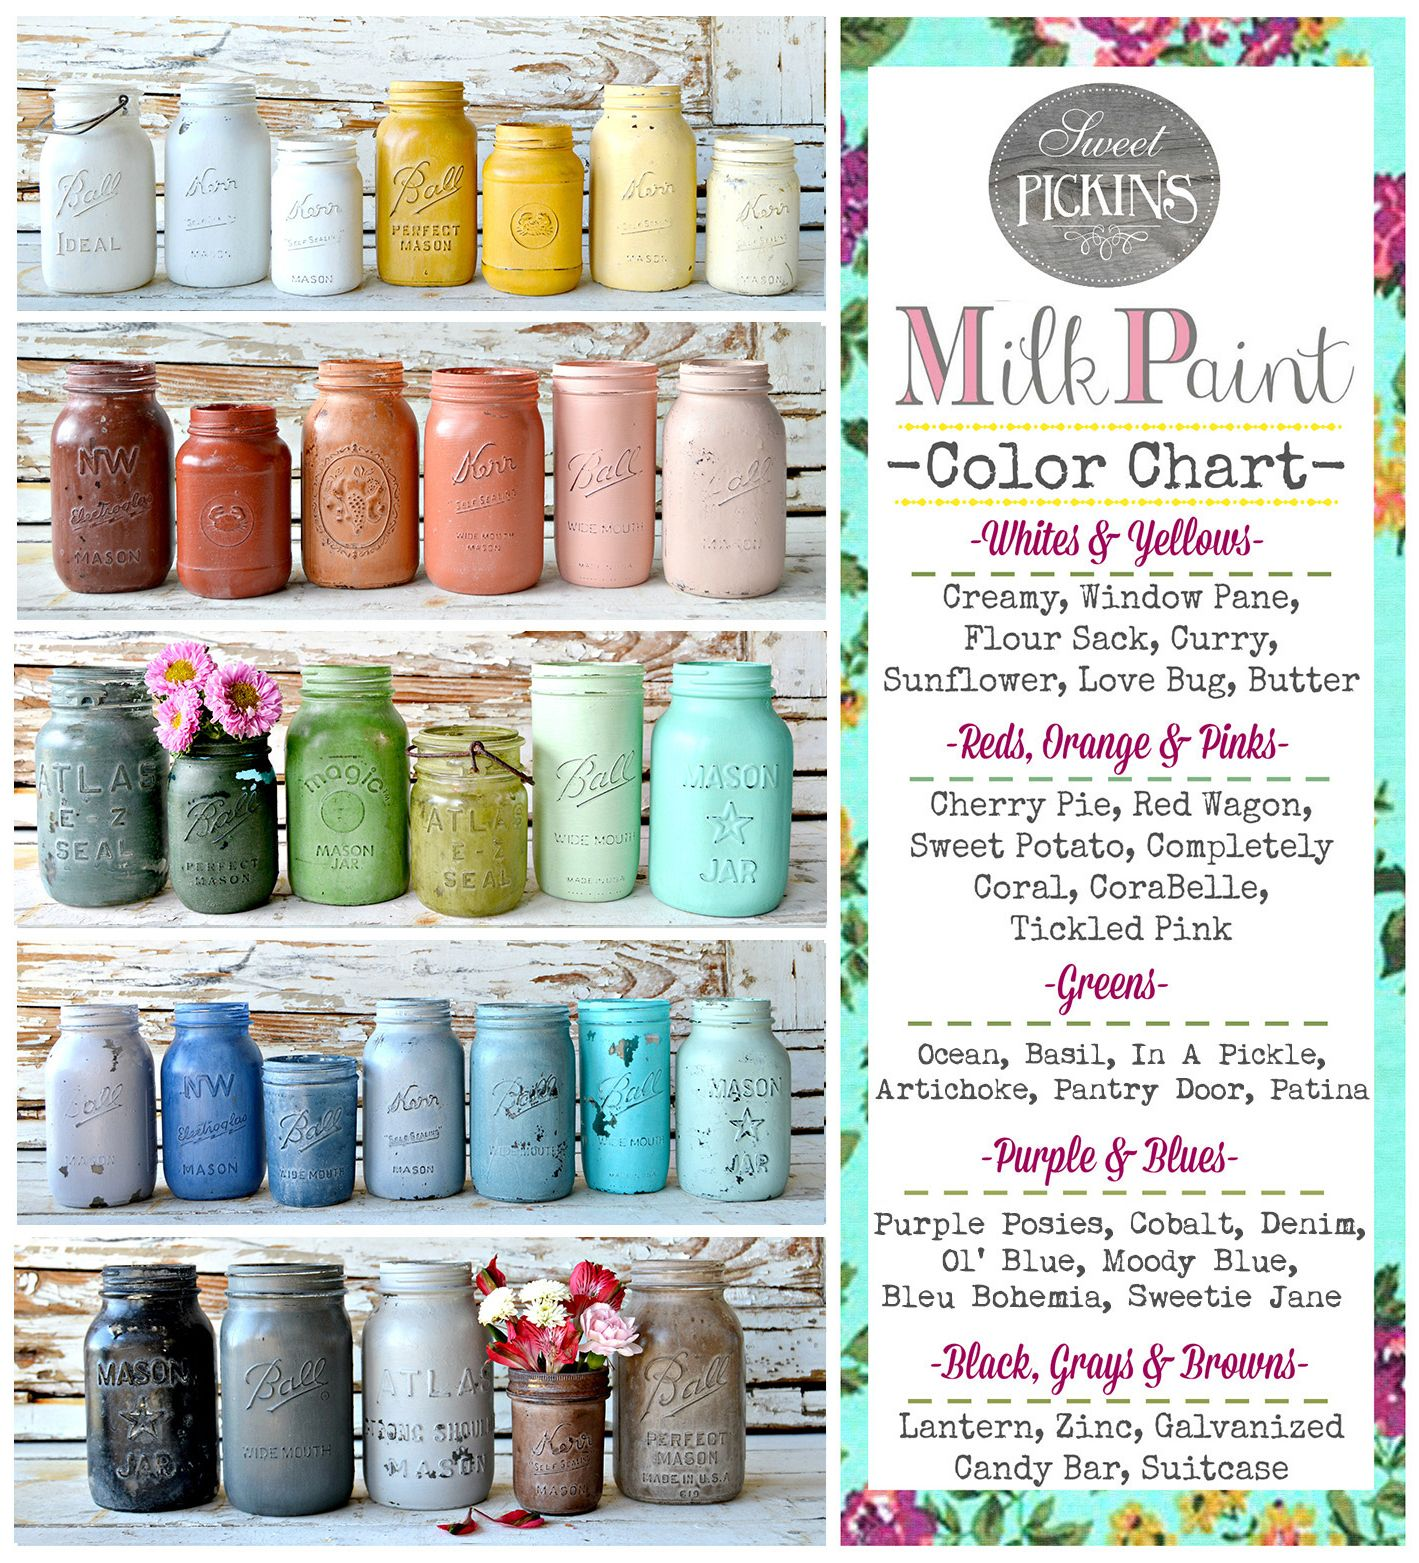 The Beautiful Colors Offered By Sweet Pickins Milk Paint Shop For